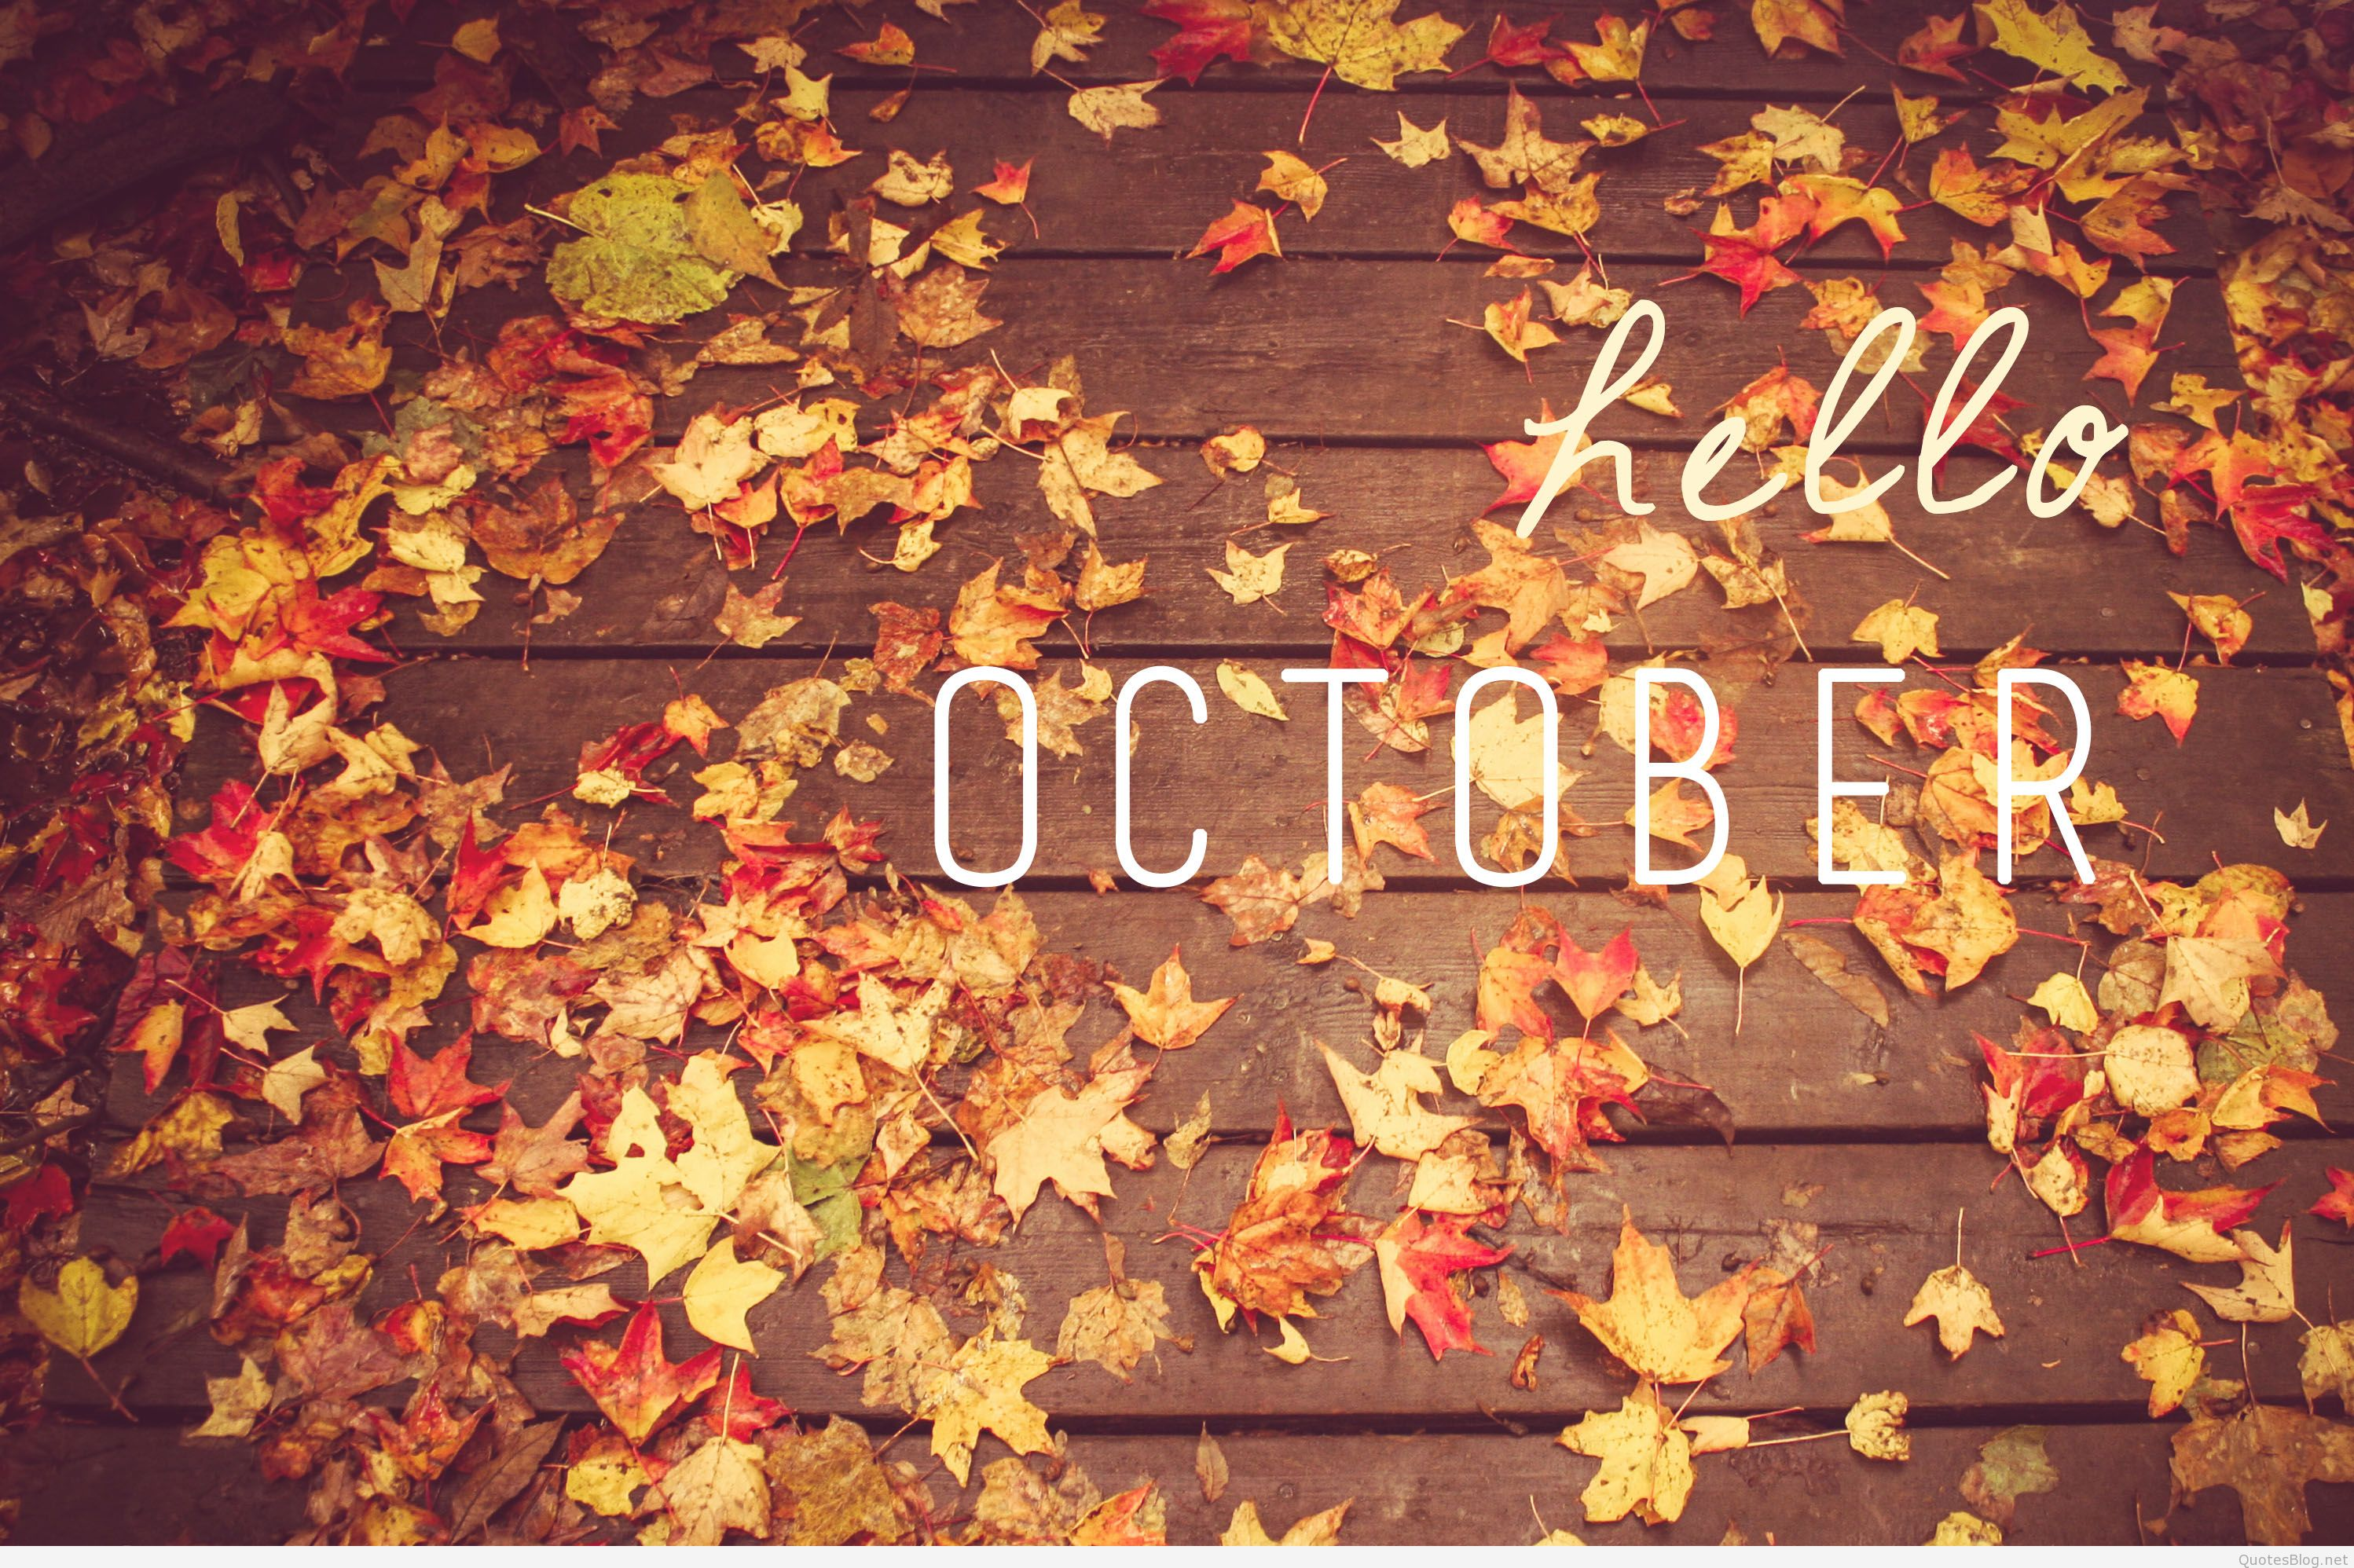 Hello October Images for Facebook